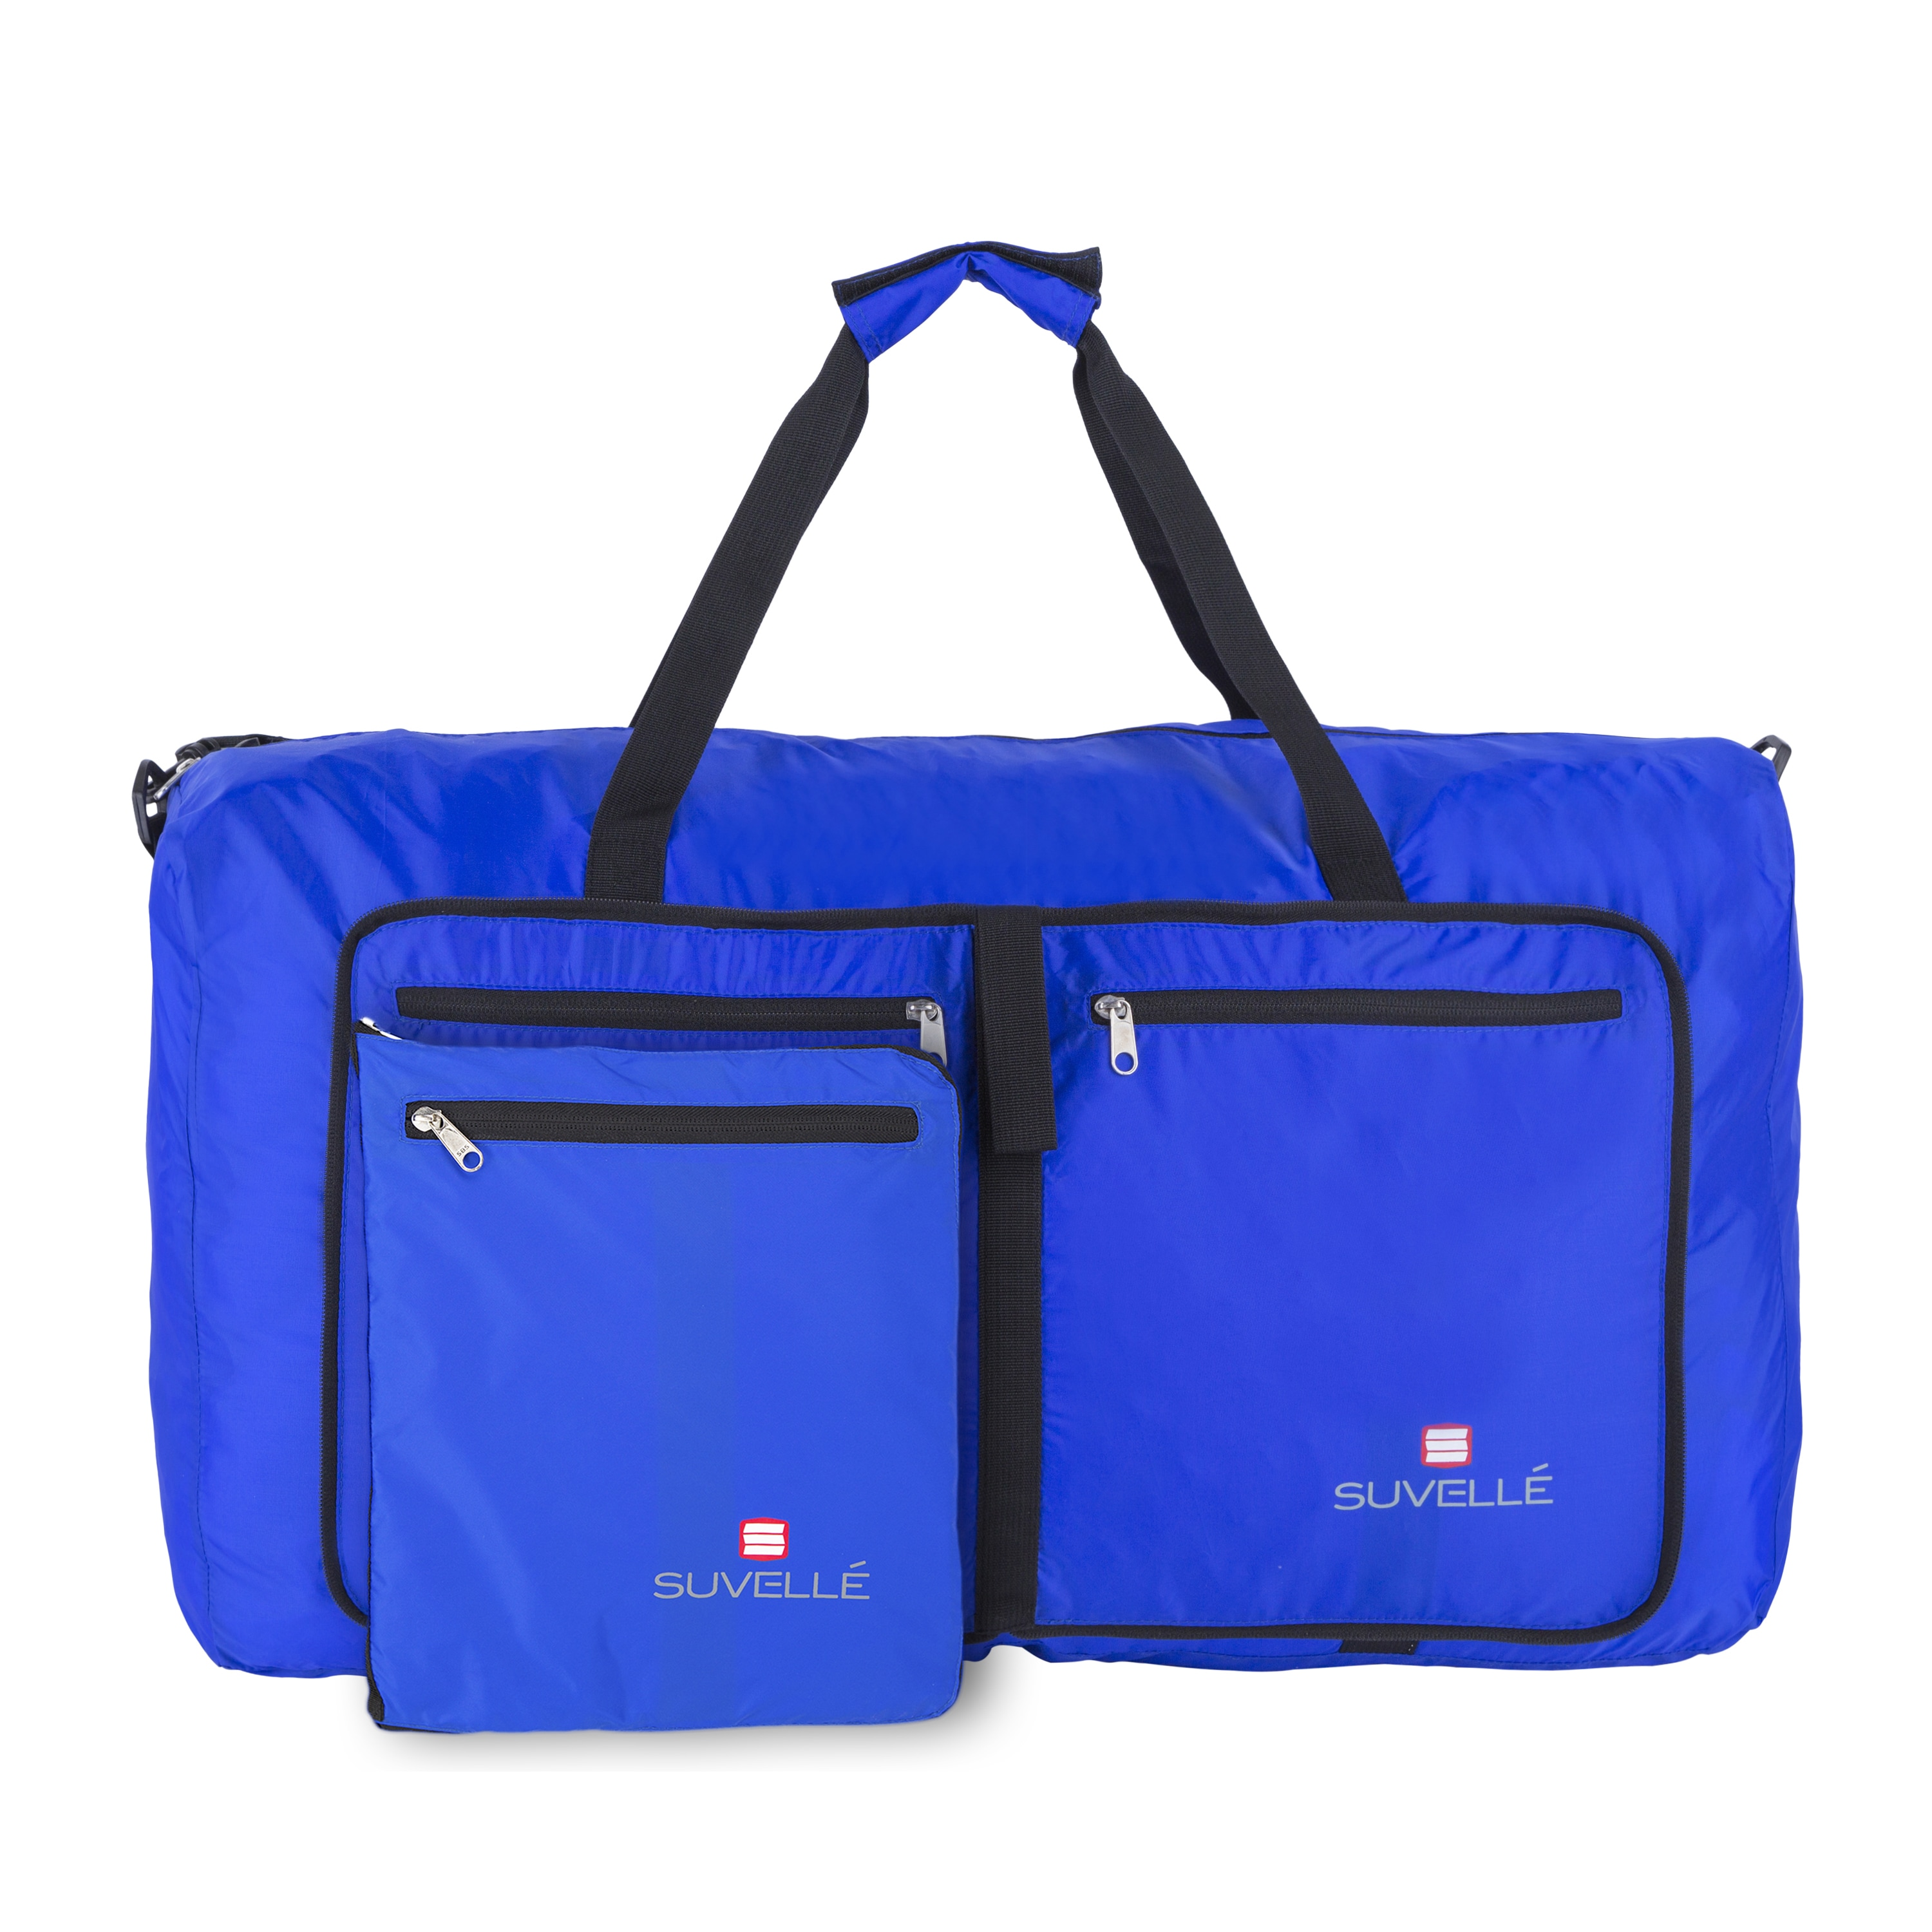 a9b1ab3fd6e3 Shop Suvelle Travel Duffel Bag 29-inch Foldable Lightweight Duffle Bag - Free  Shipping On Orders Over  45 - Overstock - 9765357